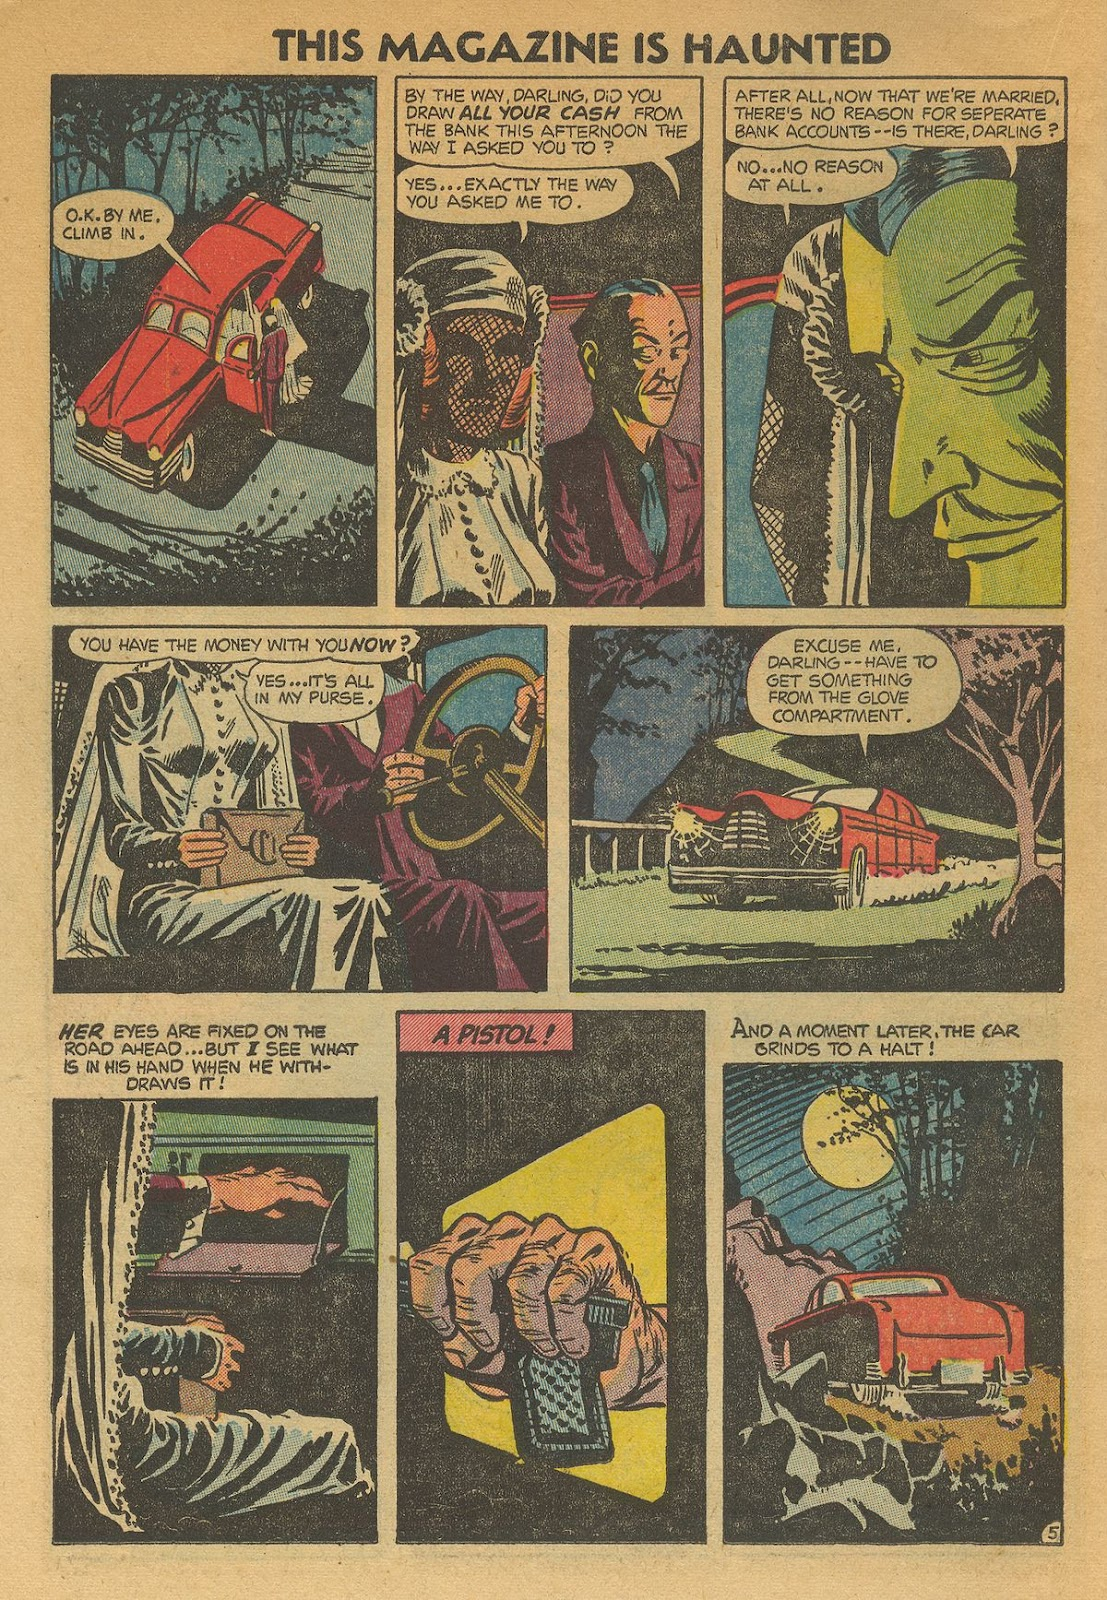 Read online This Magazine Is Haunted comic -  Issue #18 - 14